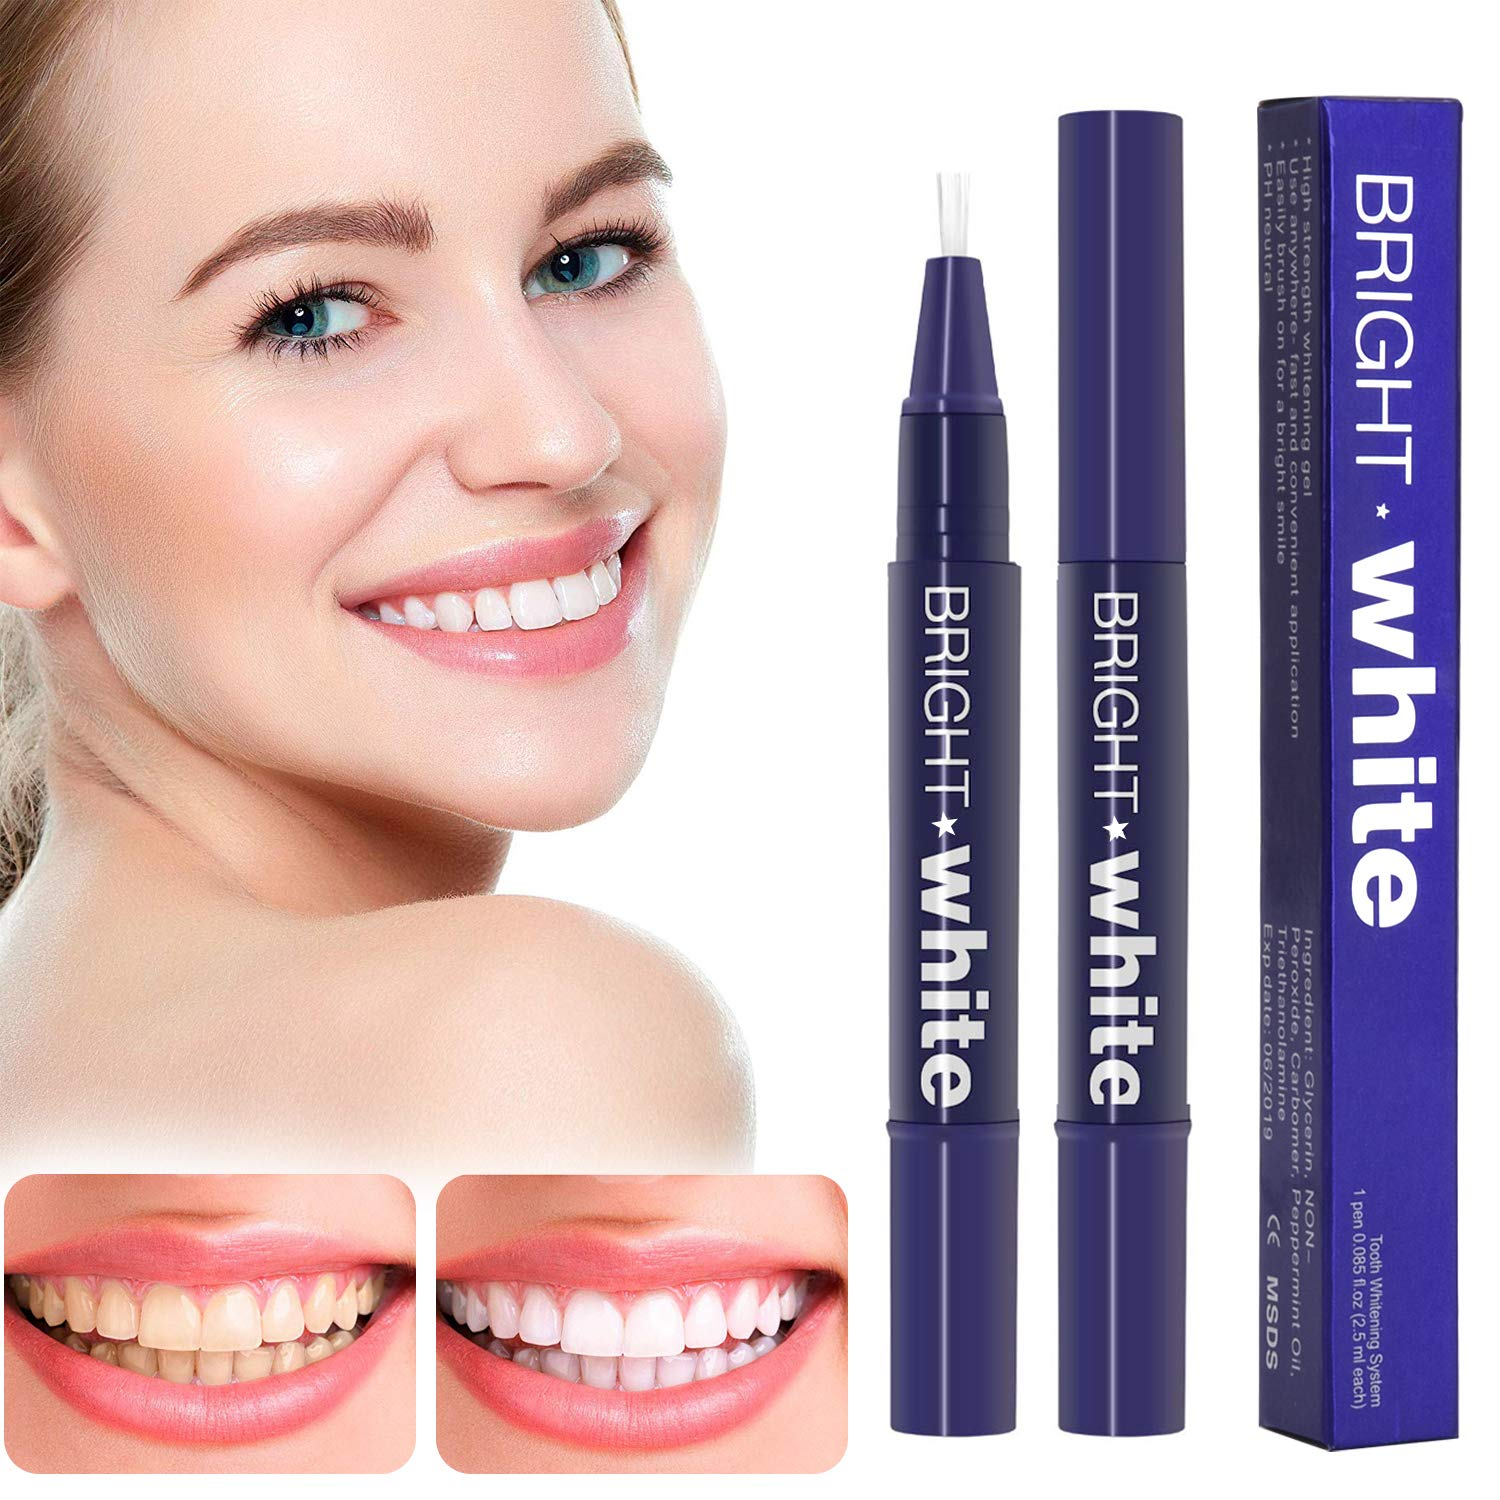 Teeth Whitening Pen (2 Pack), Safe 35% Carbamide Peroxide Gel, 20+ Uses,  Effective, Painless, No